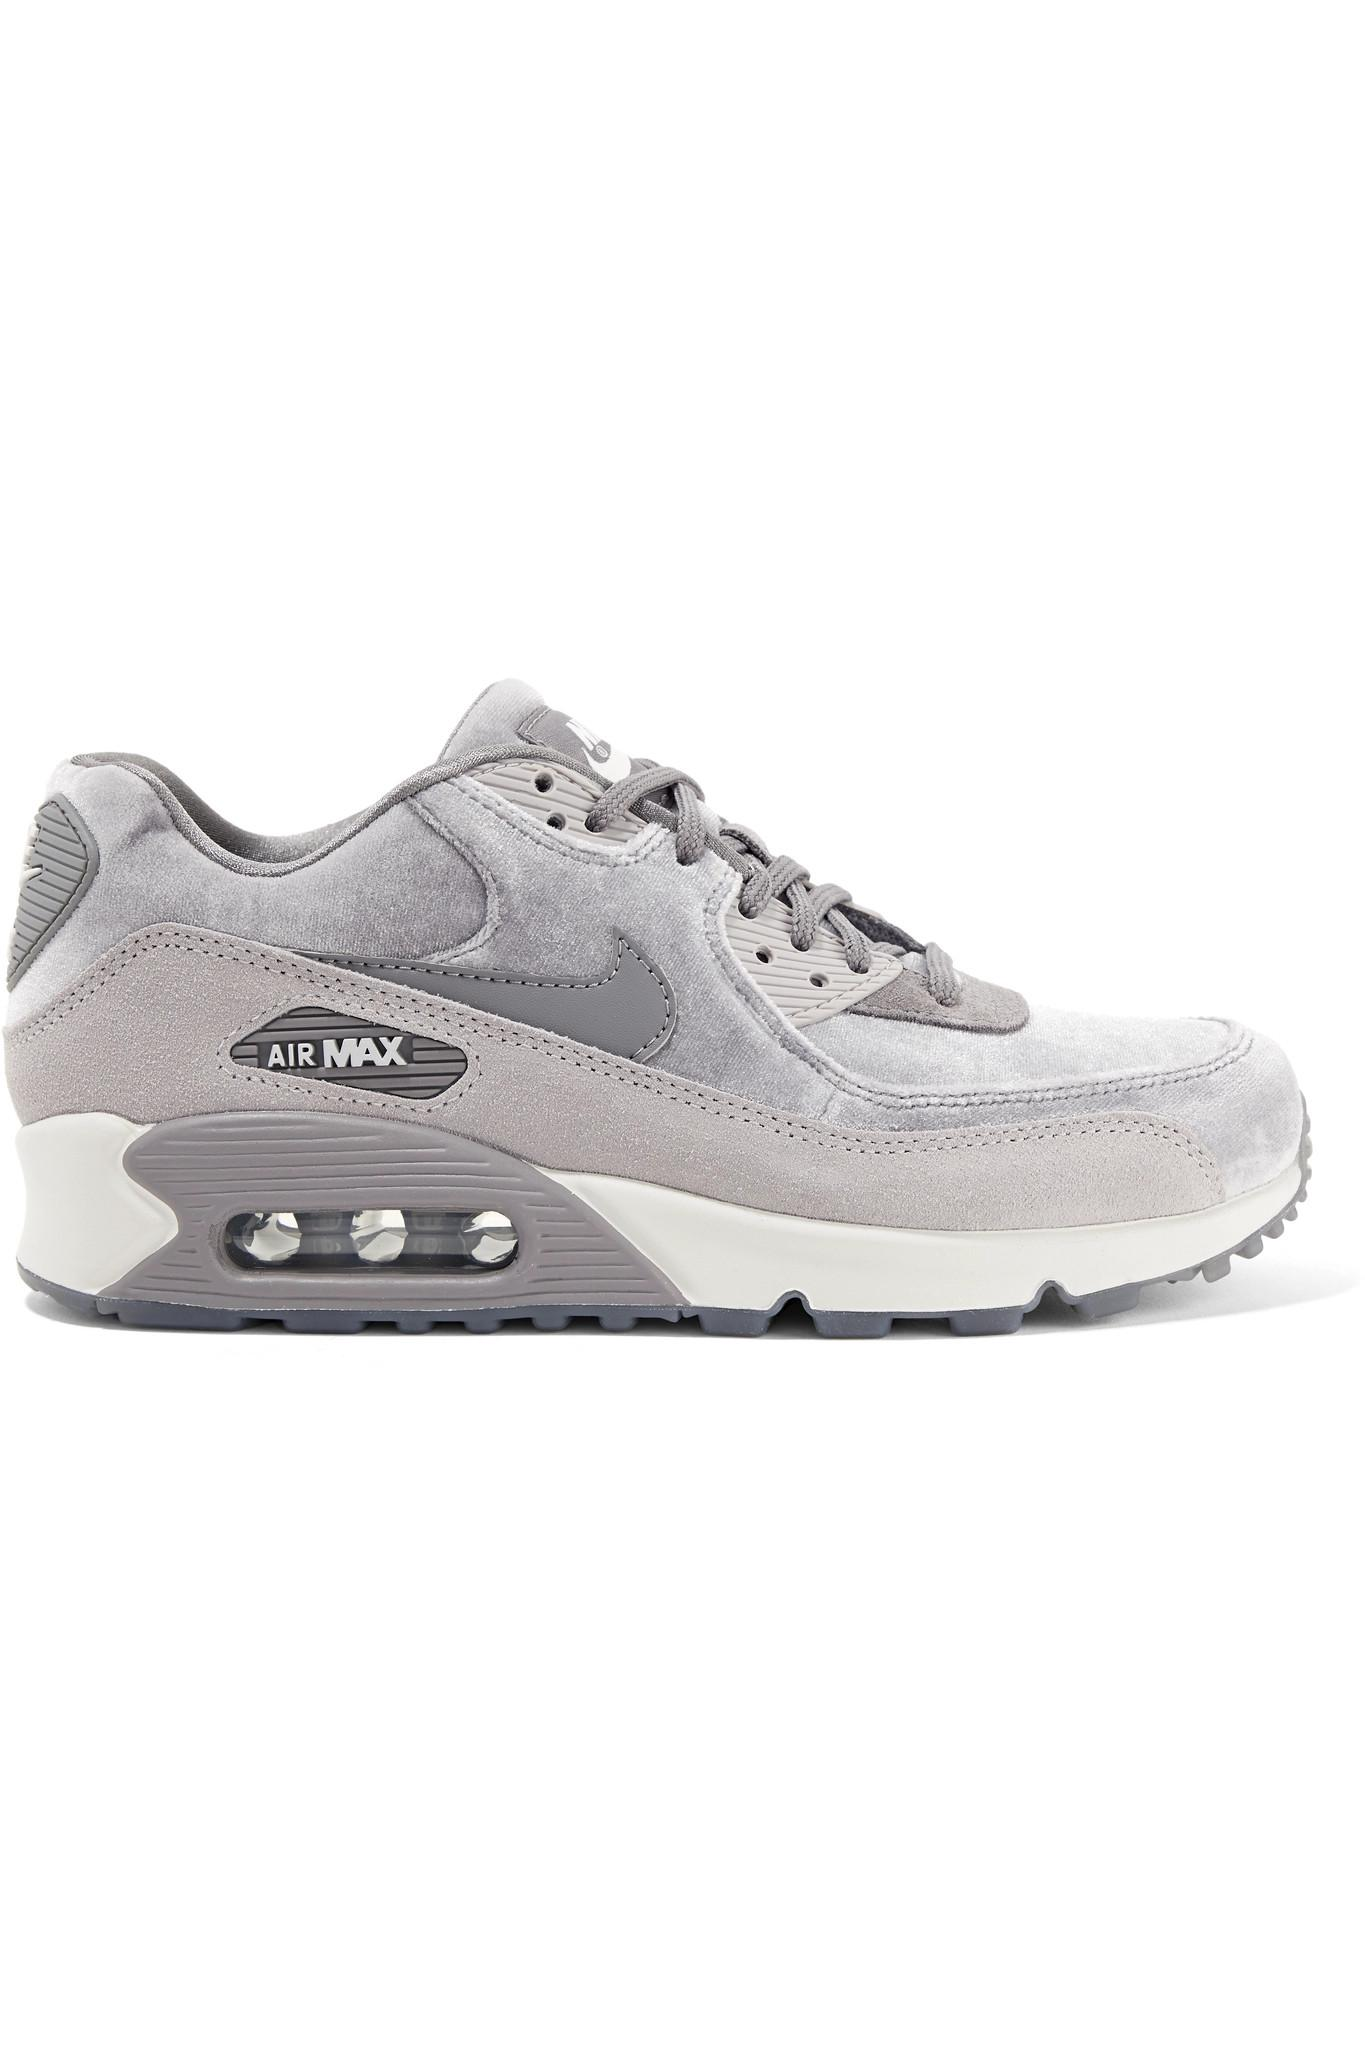 ccea563bd08 Lyst - Nike Air Max 90 Suede-trimmed Velvet Sneakers in Gray